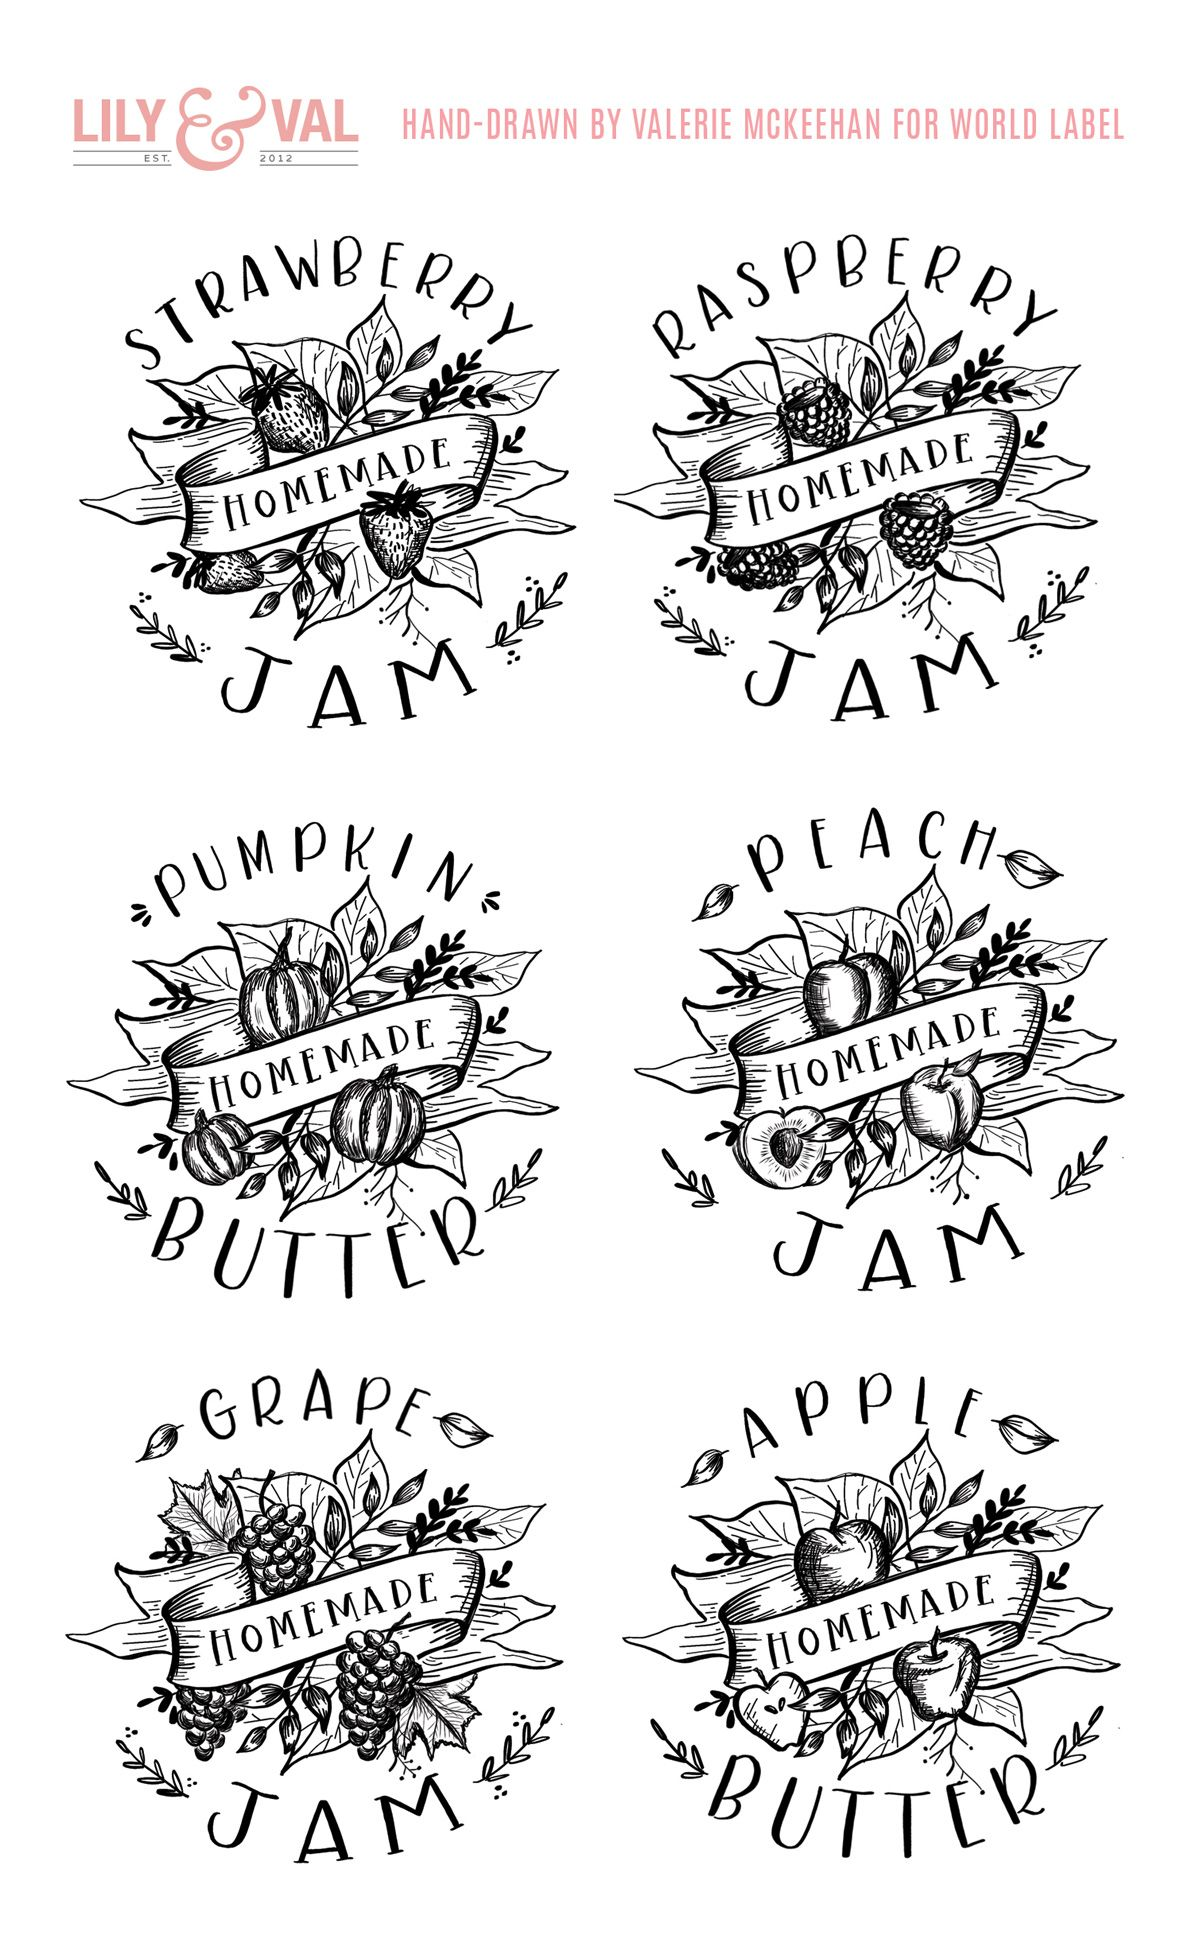 FREE Lily & Val for World Label Hand-Drawn Jam Label Downloads ...